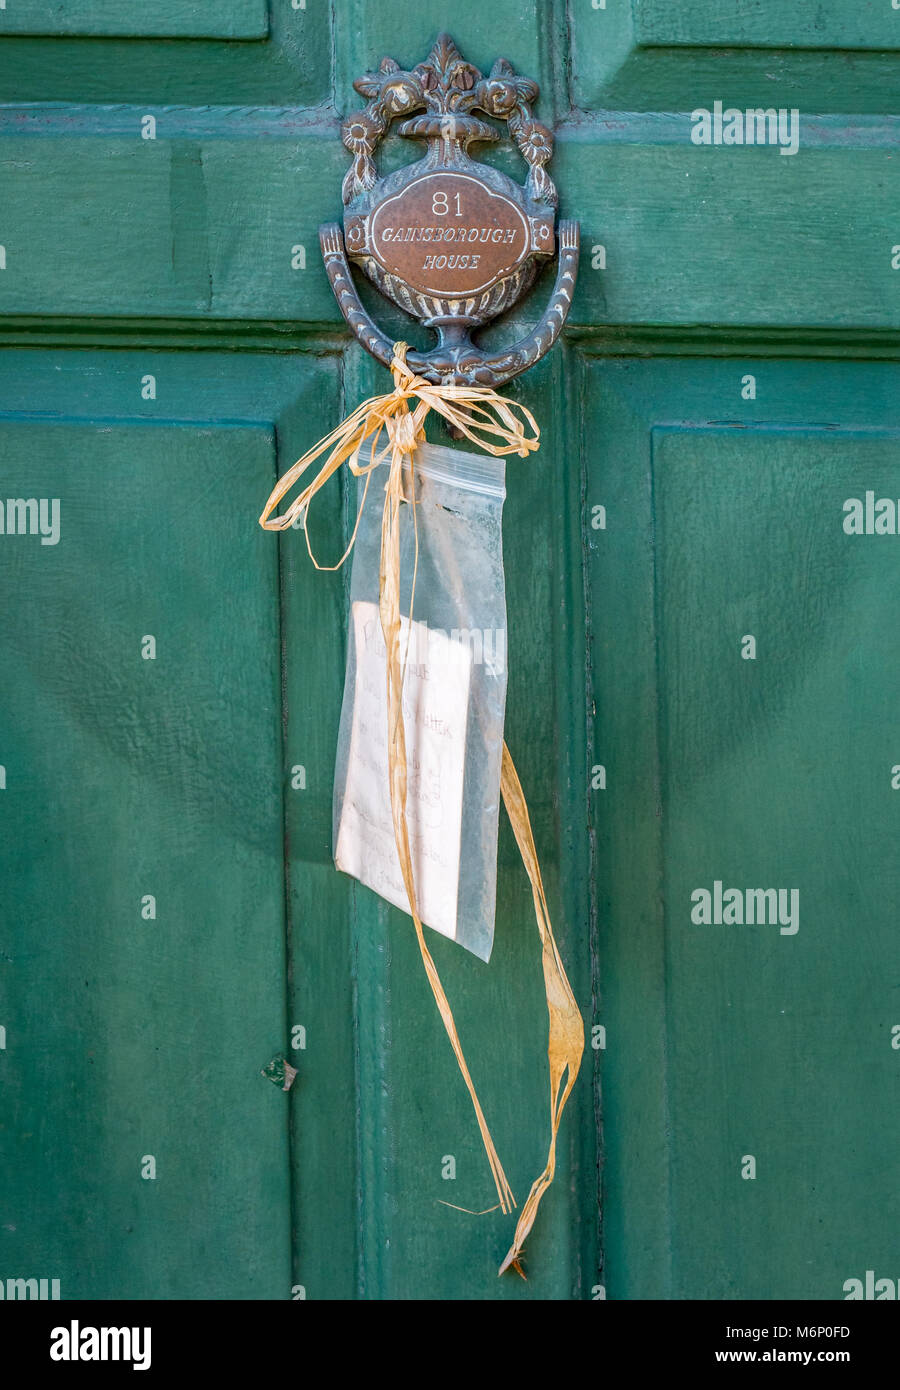 Charming hand written note tied up with raffia to the postman on a door knocker in a small town in central England - Stock Image